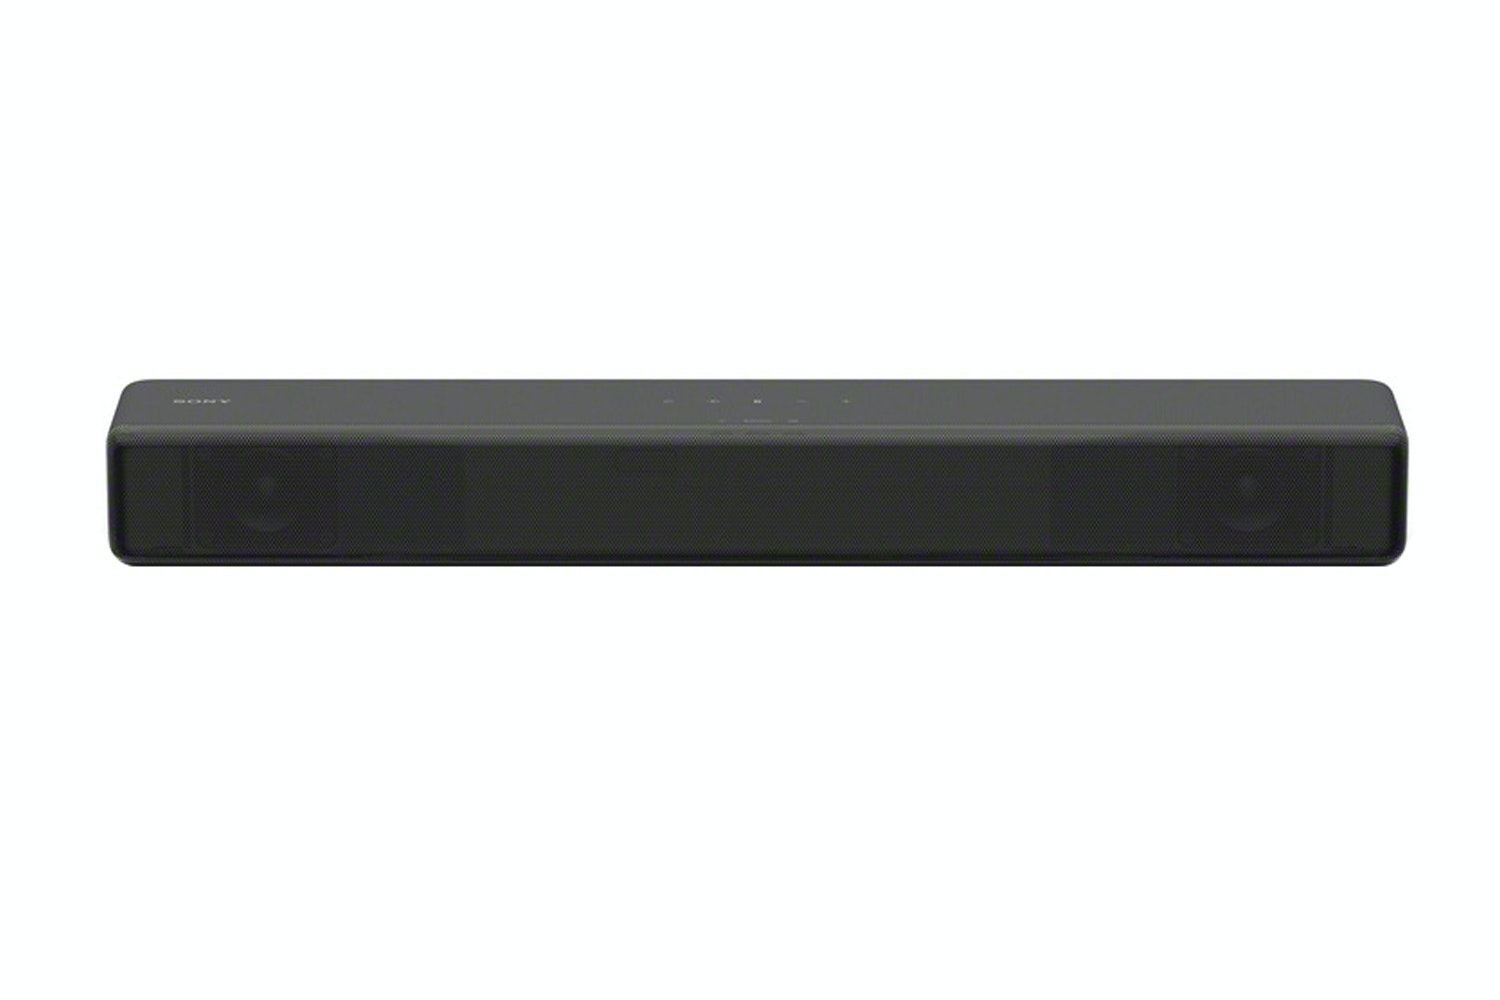 Sony HT-SF200 2.1ch Compact Single Soundbar with Built In Subwoofer | Black